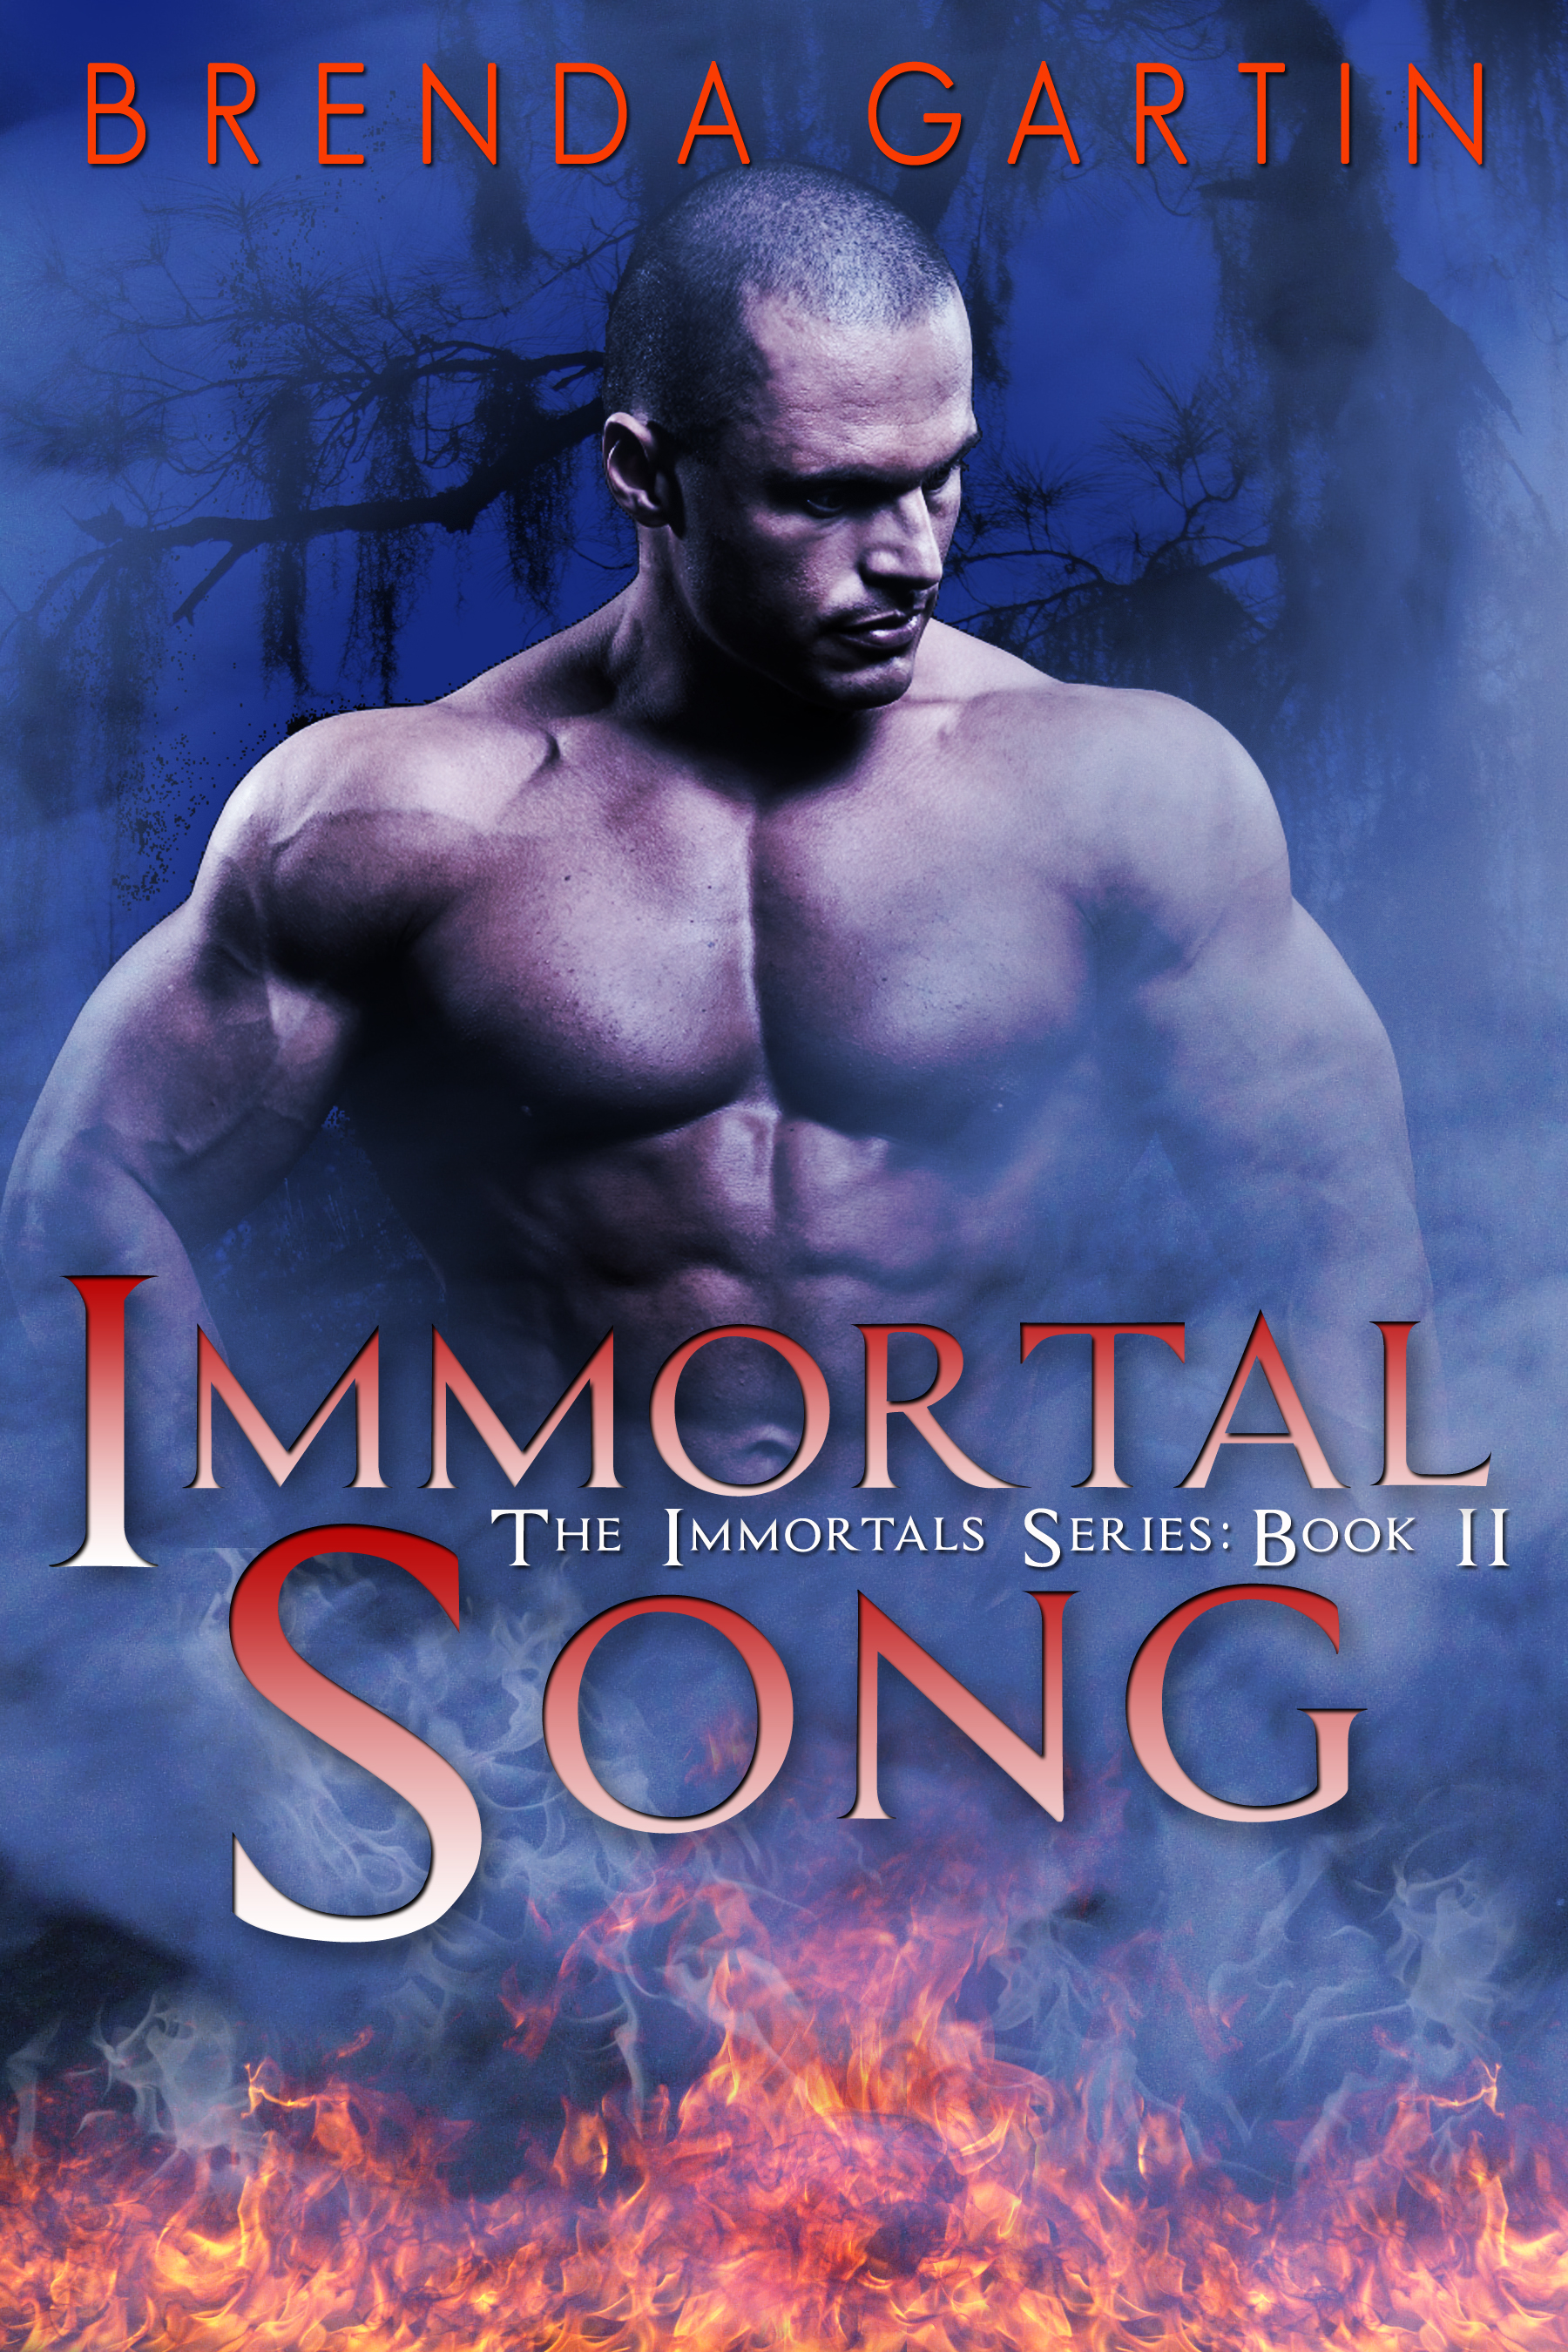 Coming this fall - Immortal Song